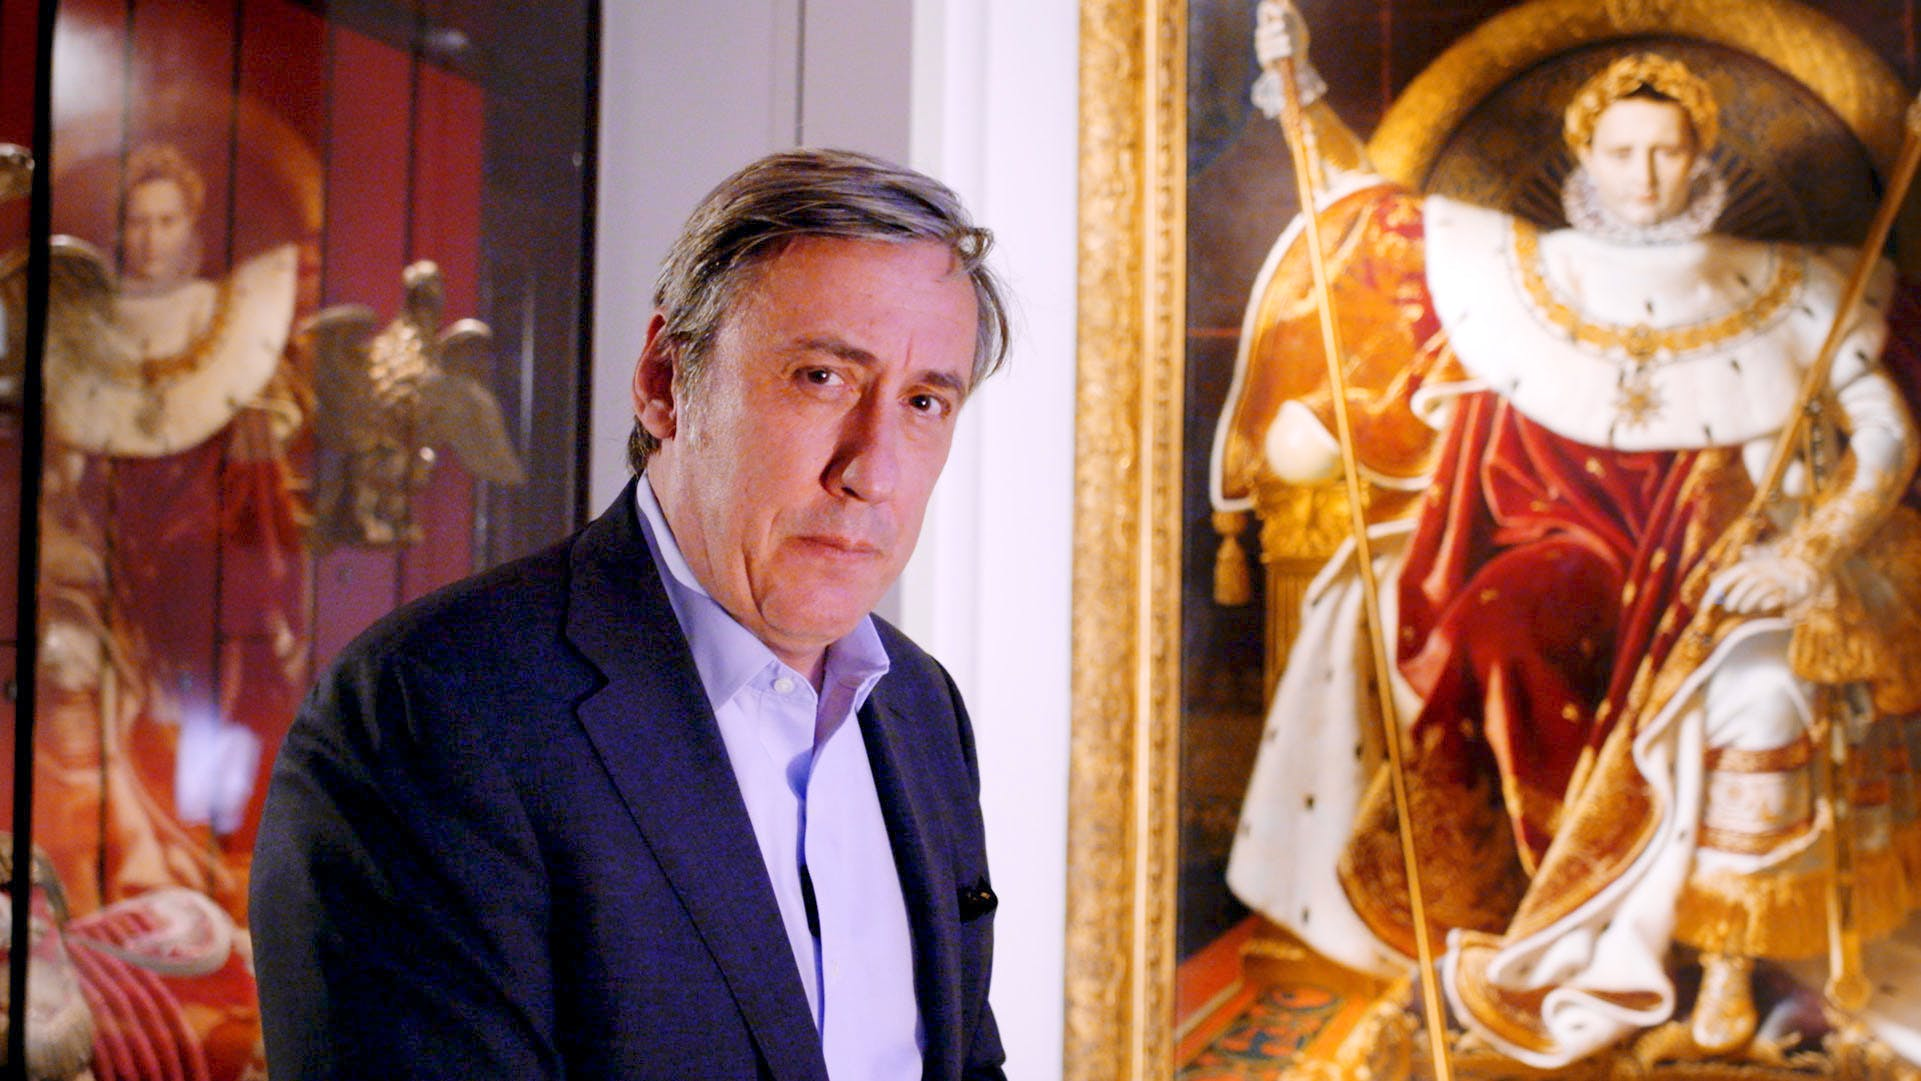 Andrew Graham-Dixon in front of 'Napoleon 1 on his Imperial Throne', by Ingres at the Musée de l'Armée, Paris. From the BBC's 'The Art of France'. © BBC